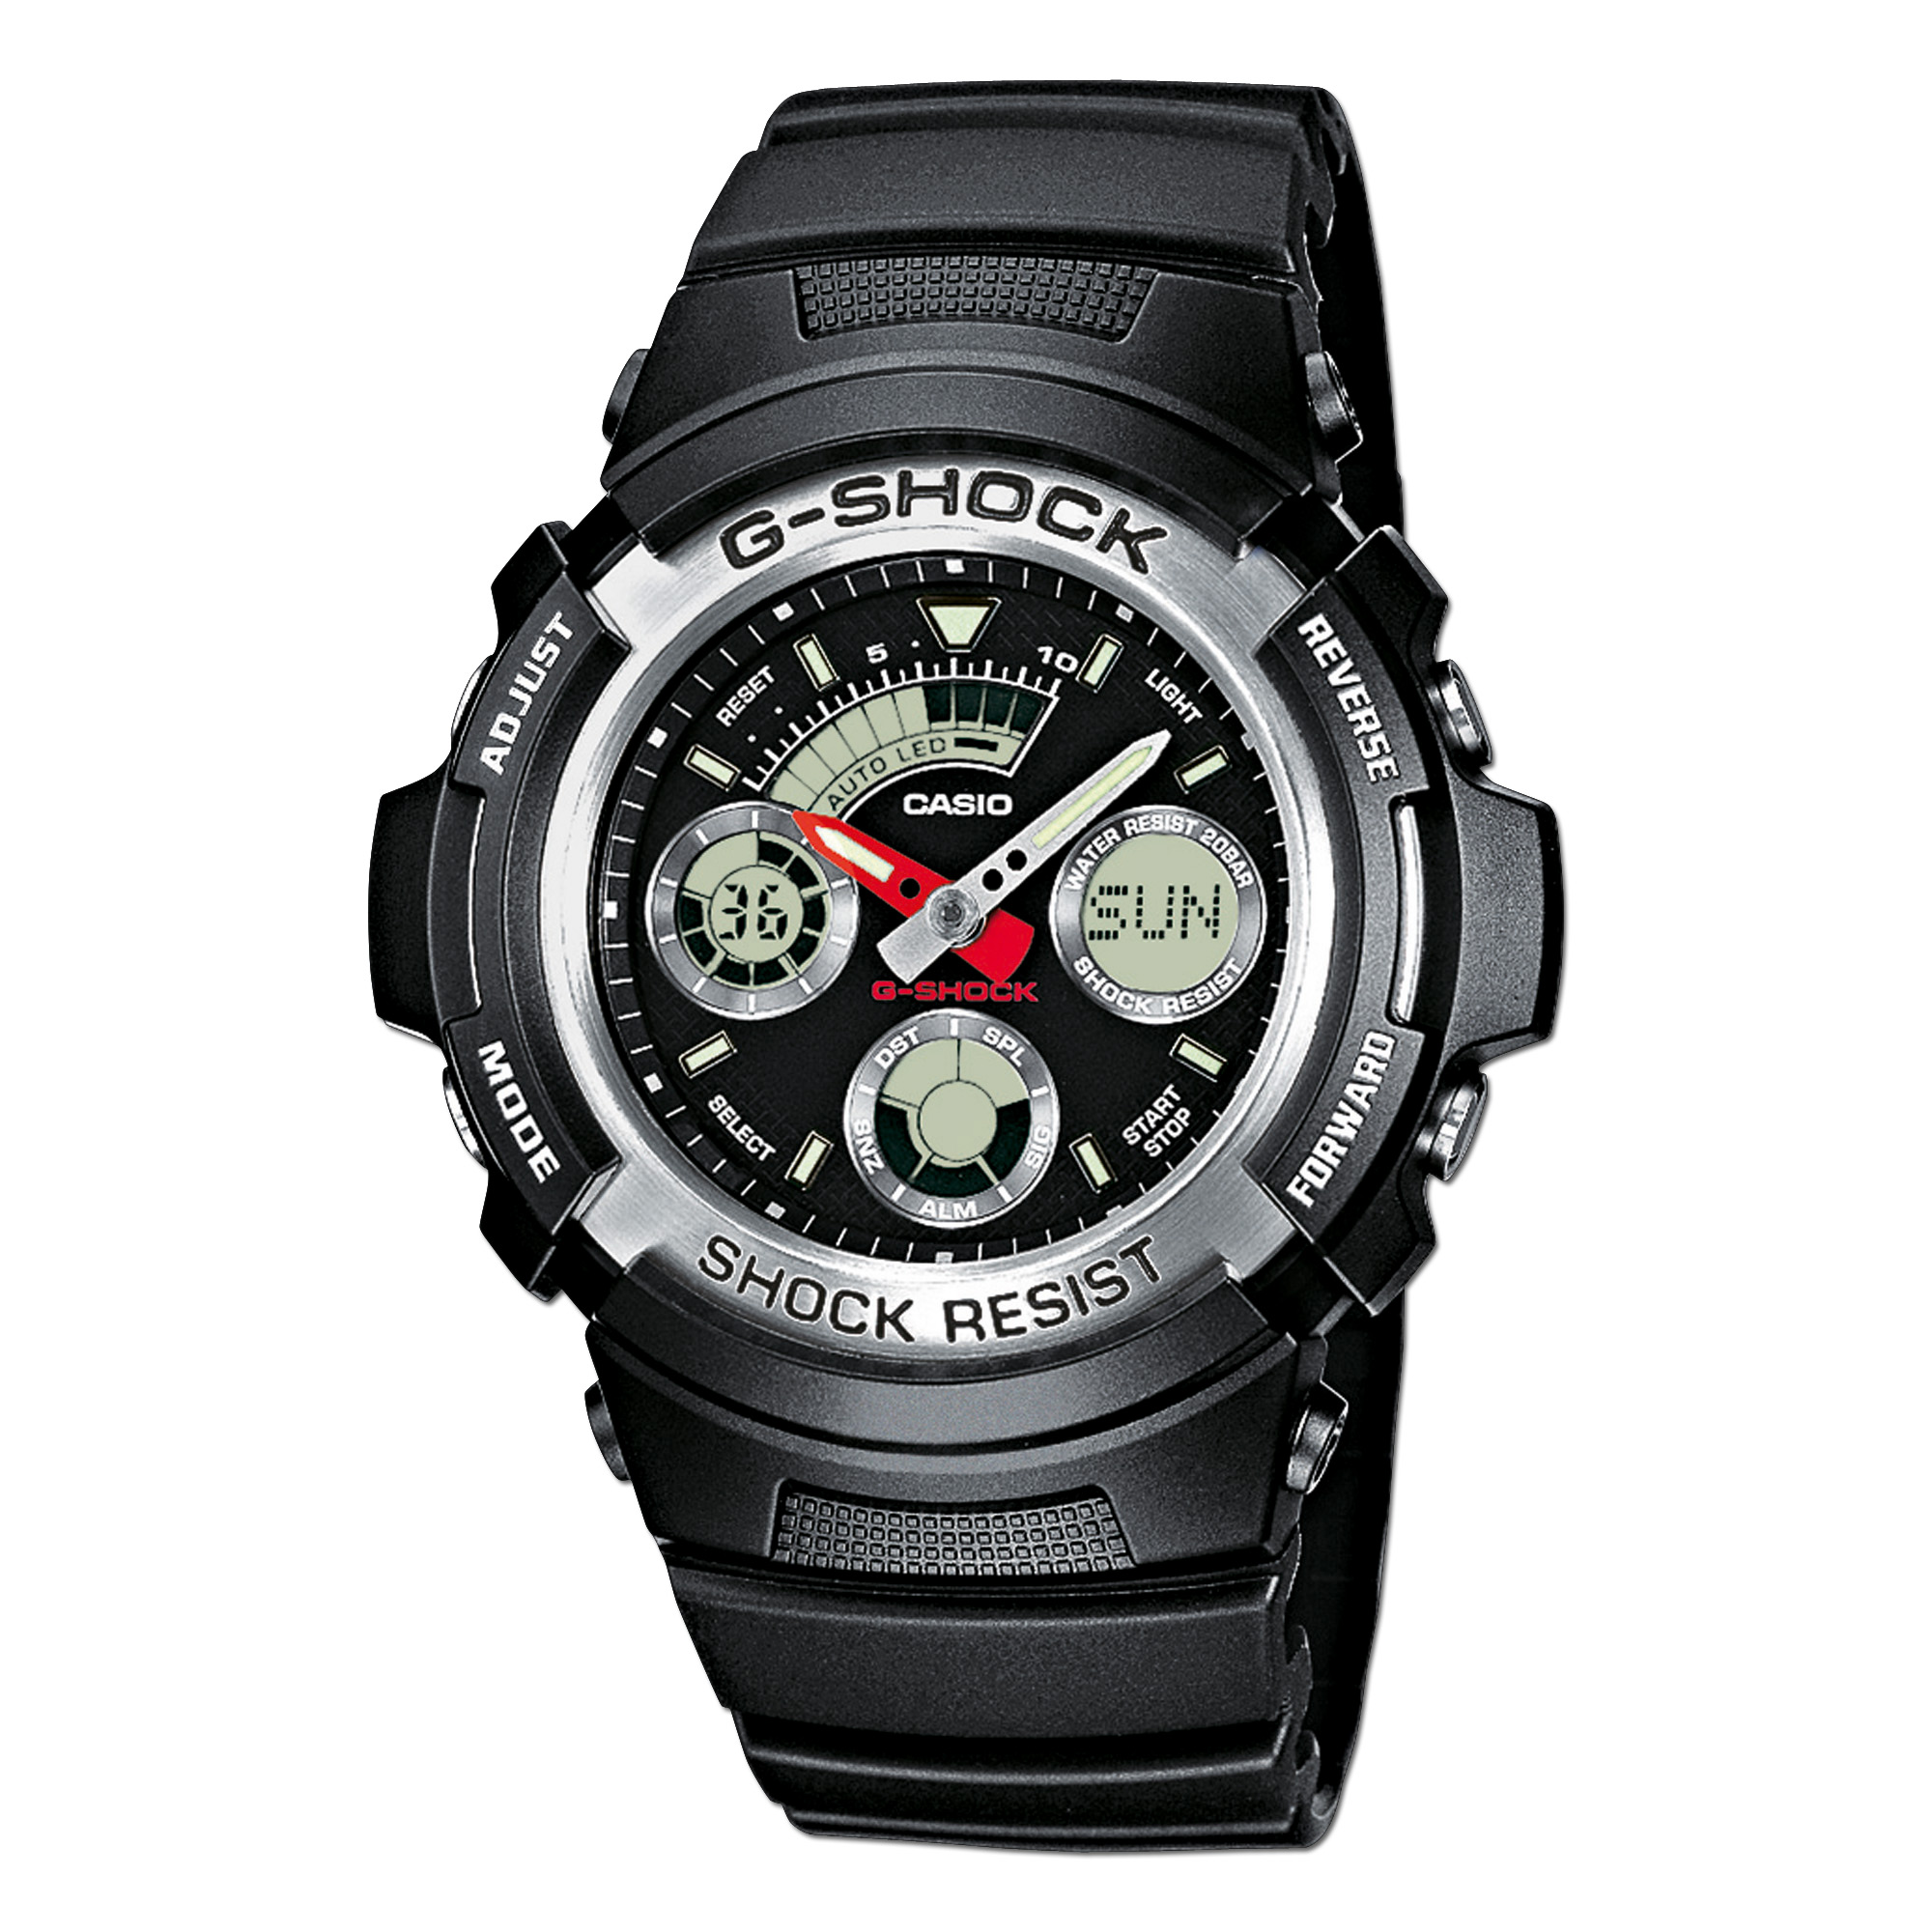 Wristwatch Casio G-Shock Speed Shifter